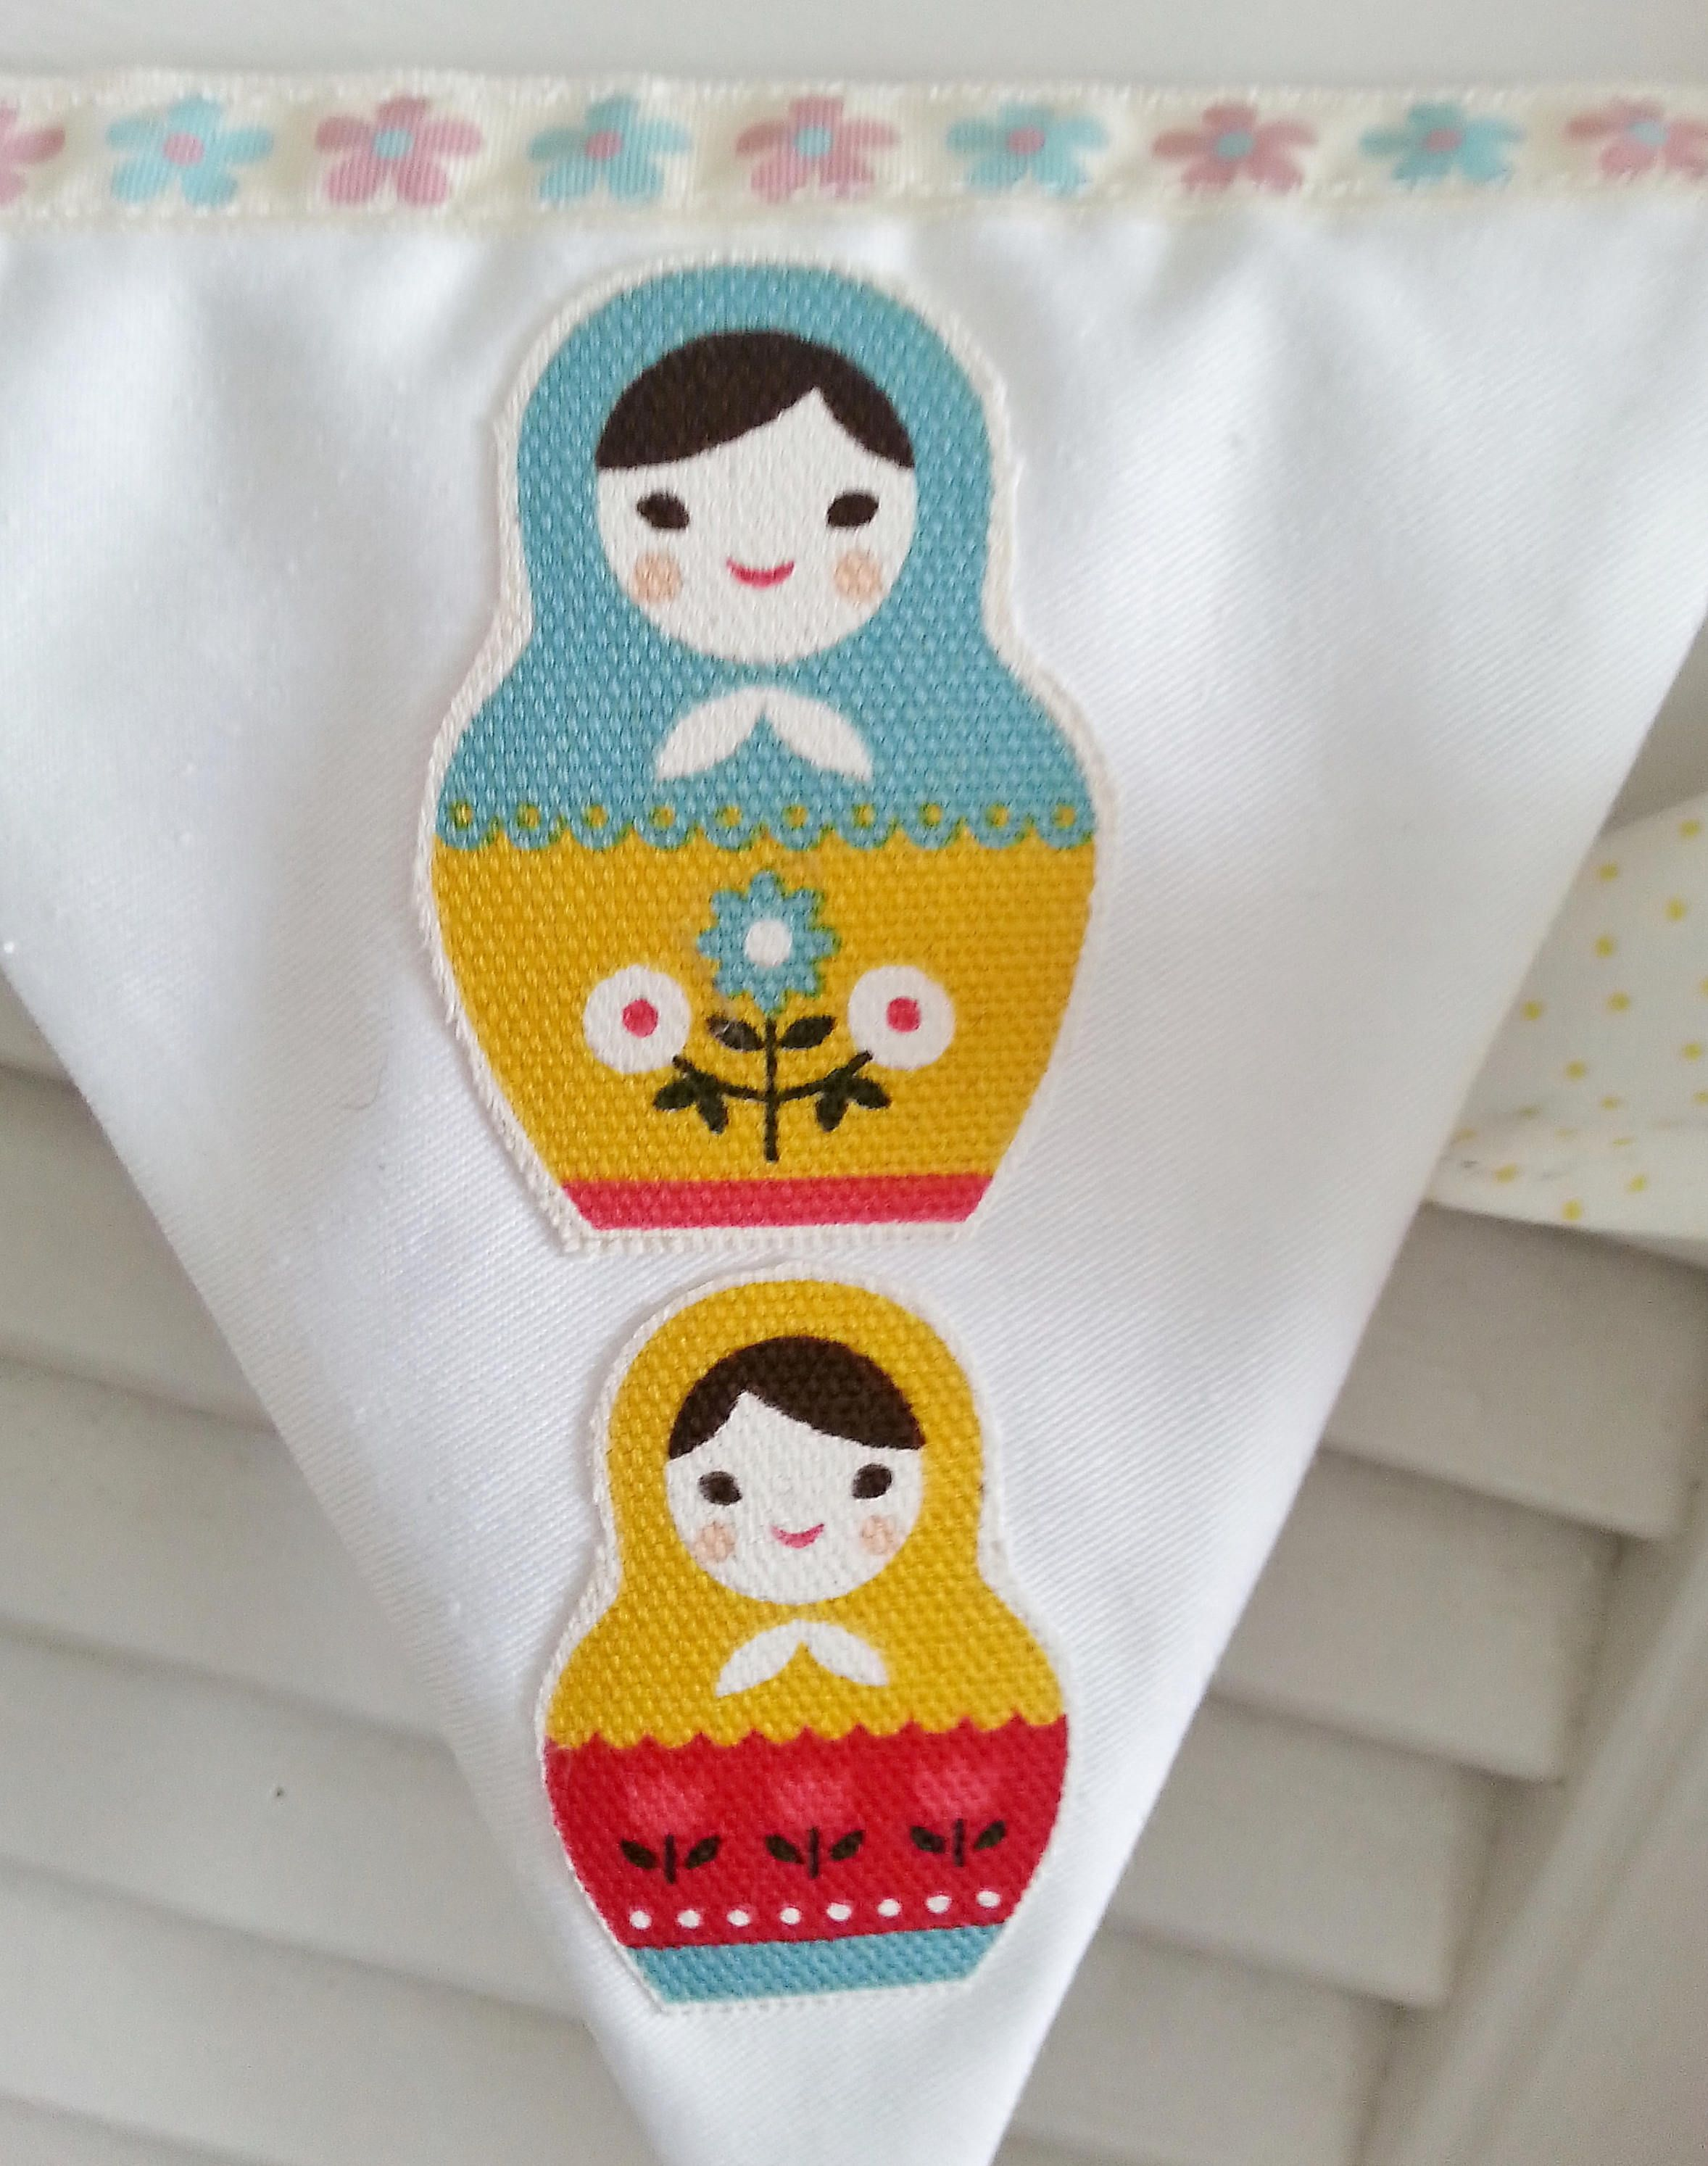 Russian doll bunting, Baby girl bunting, baby bunting, baby shower gift, nursery decor, baby girl banner, fabric bunting, baby girl nursery by MyWildeHeartUK38 on Etsy